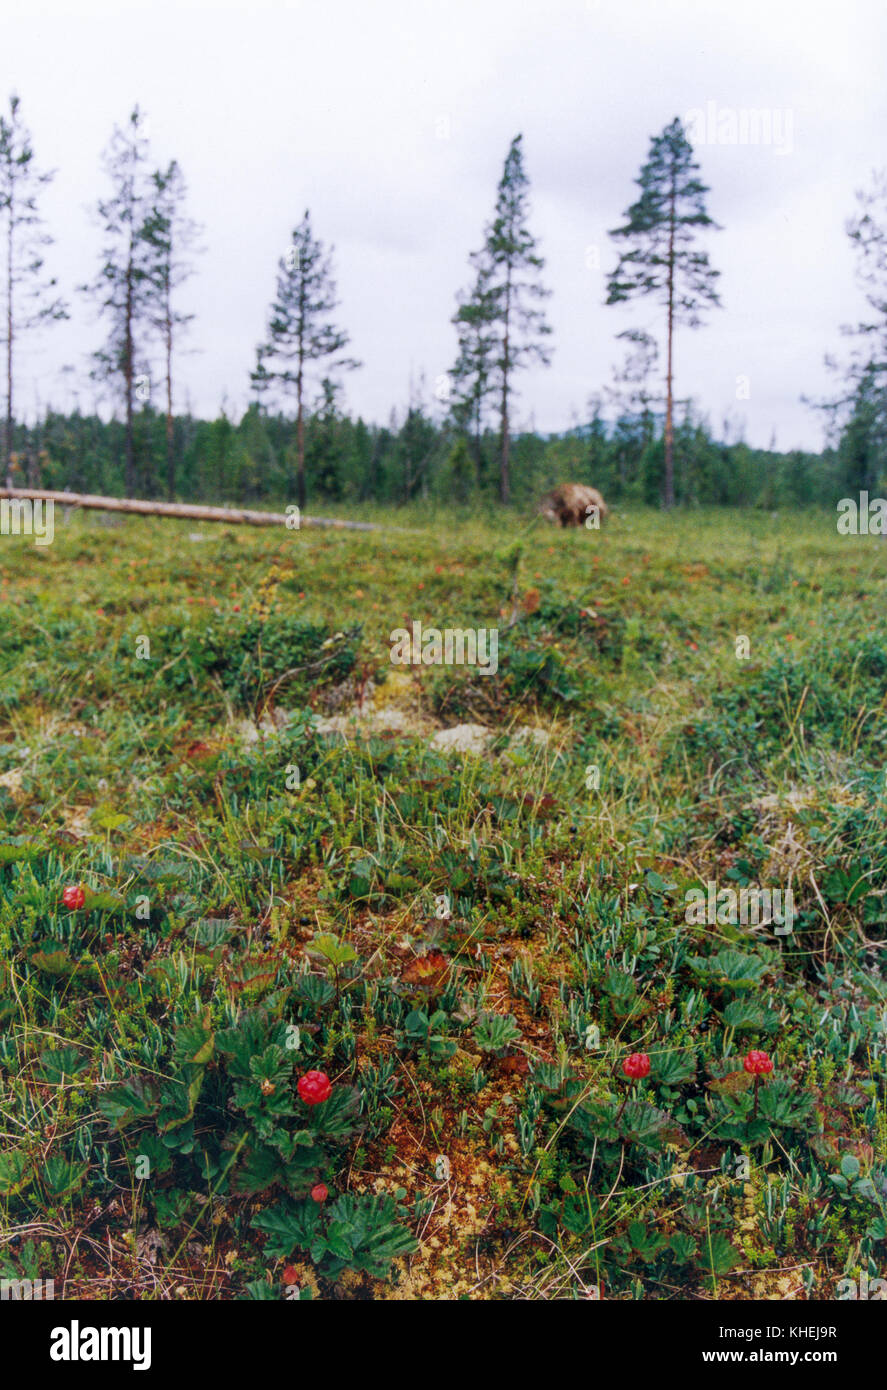 CLOUDBERRY on a swamp in northern Sweden 2010 - Stock Image